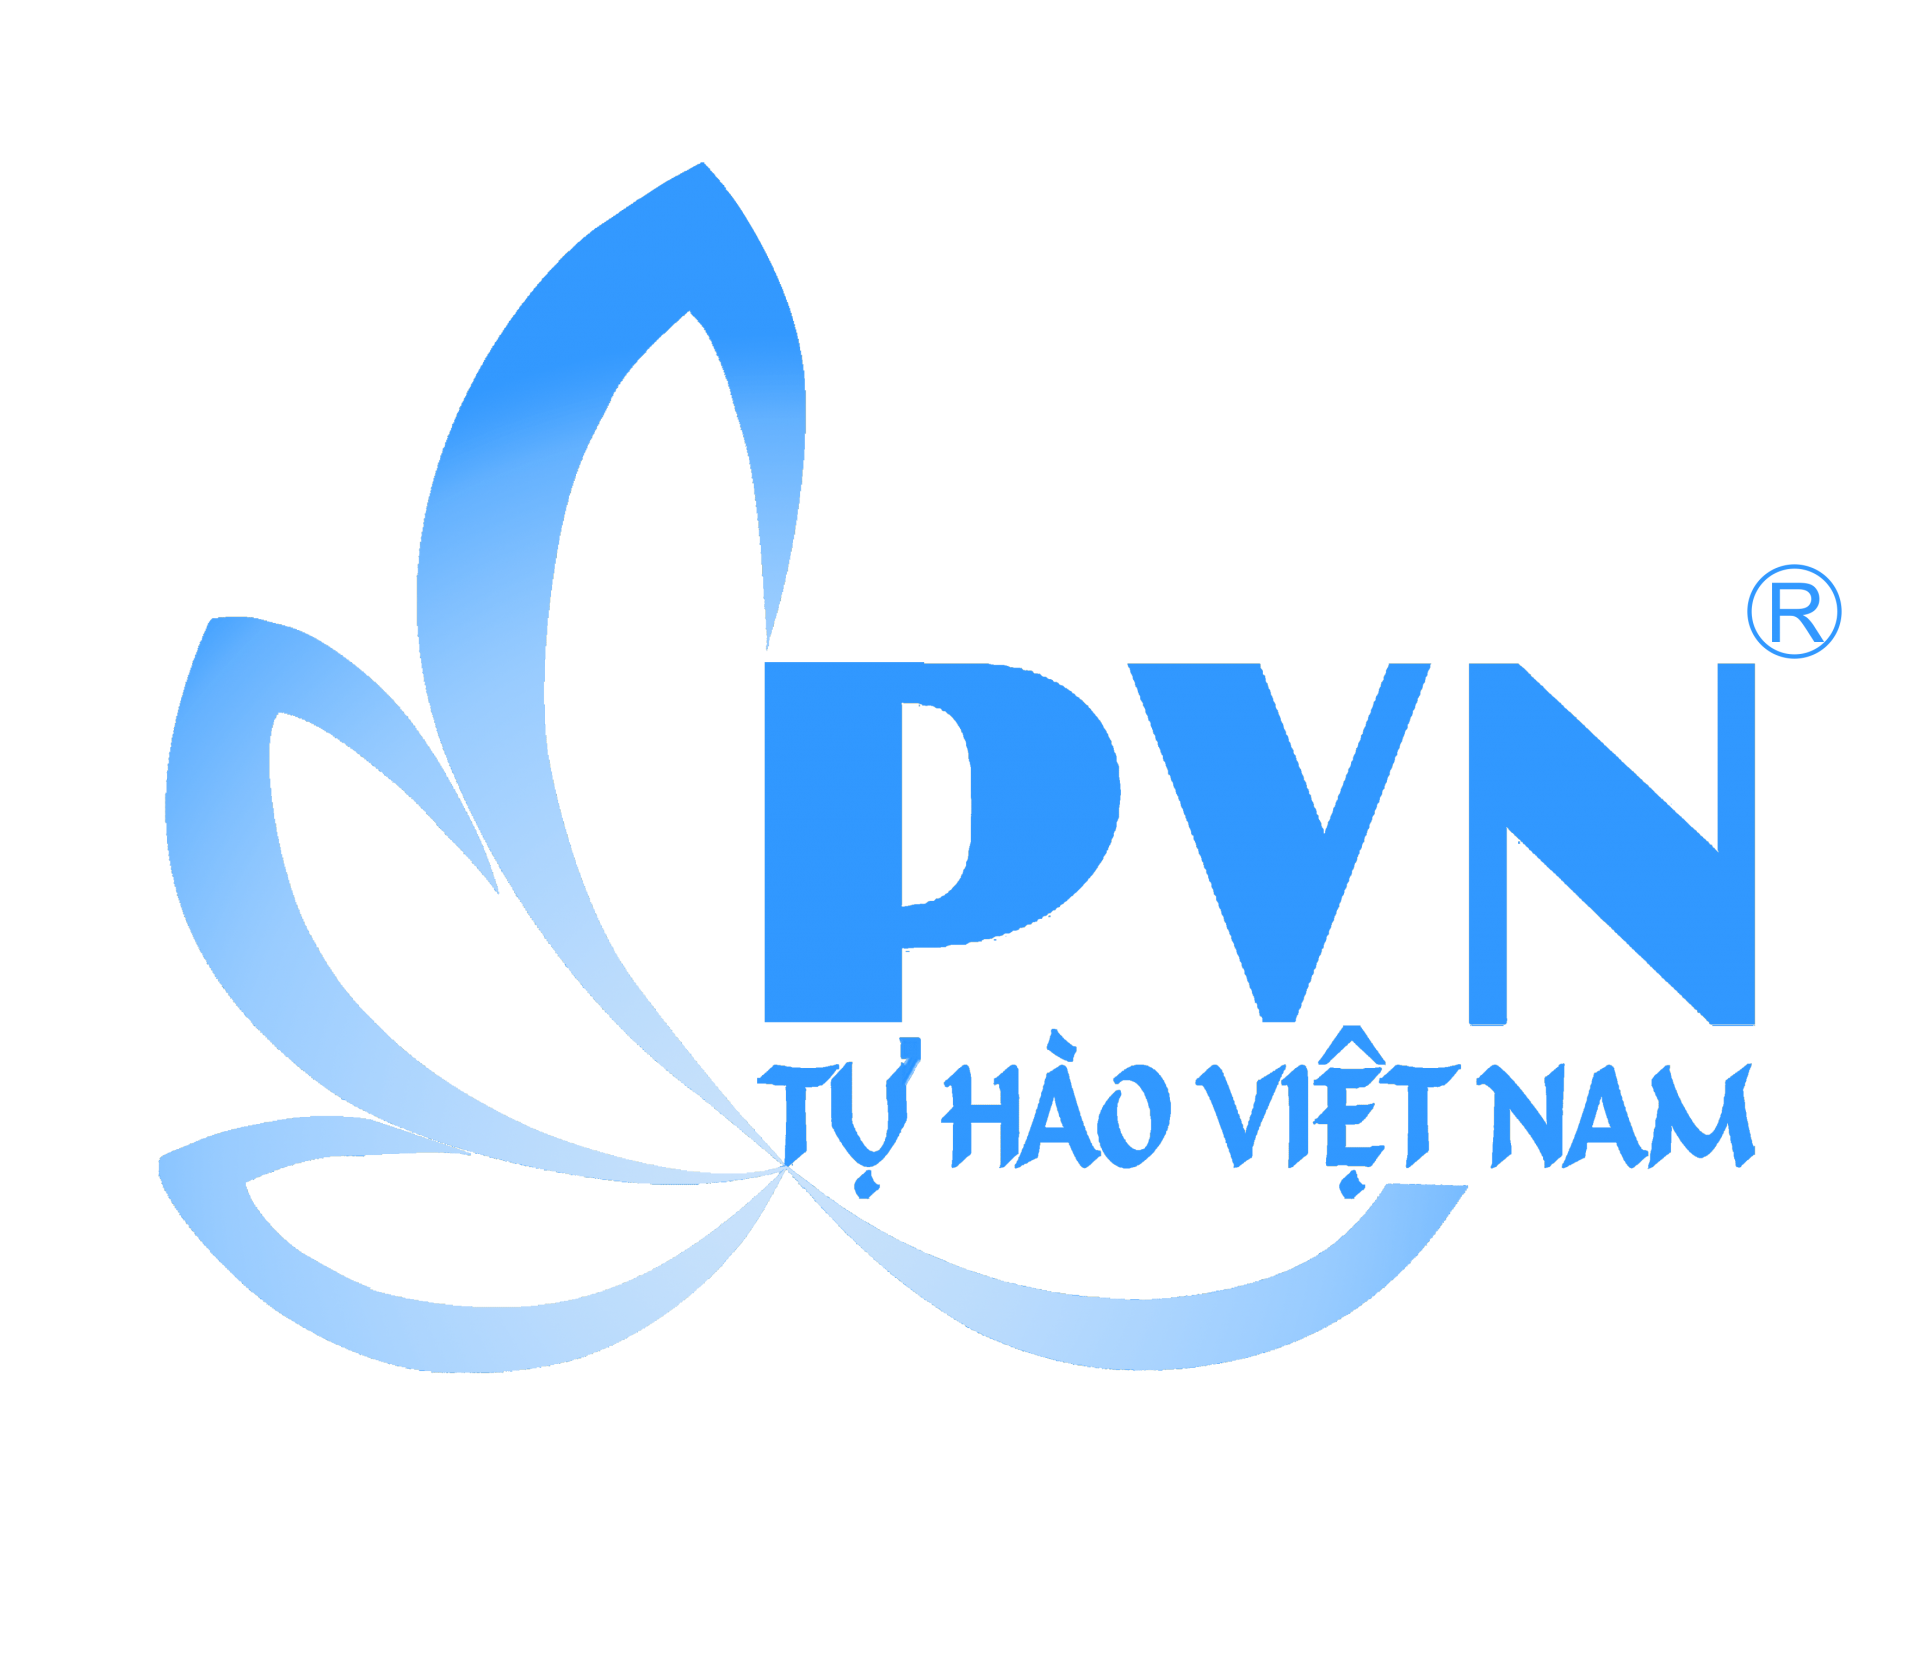 Proud VietNam Travel